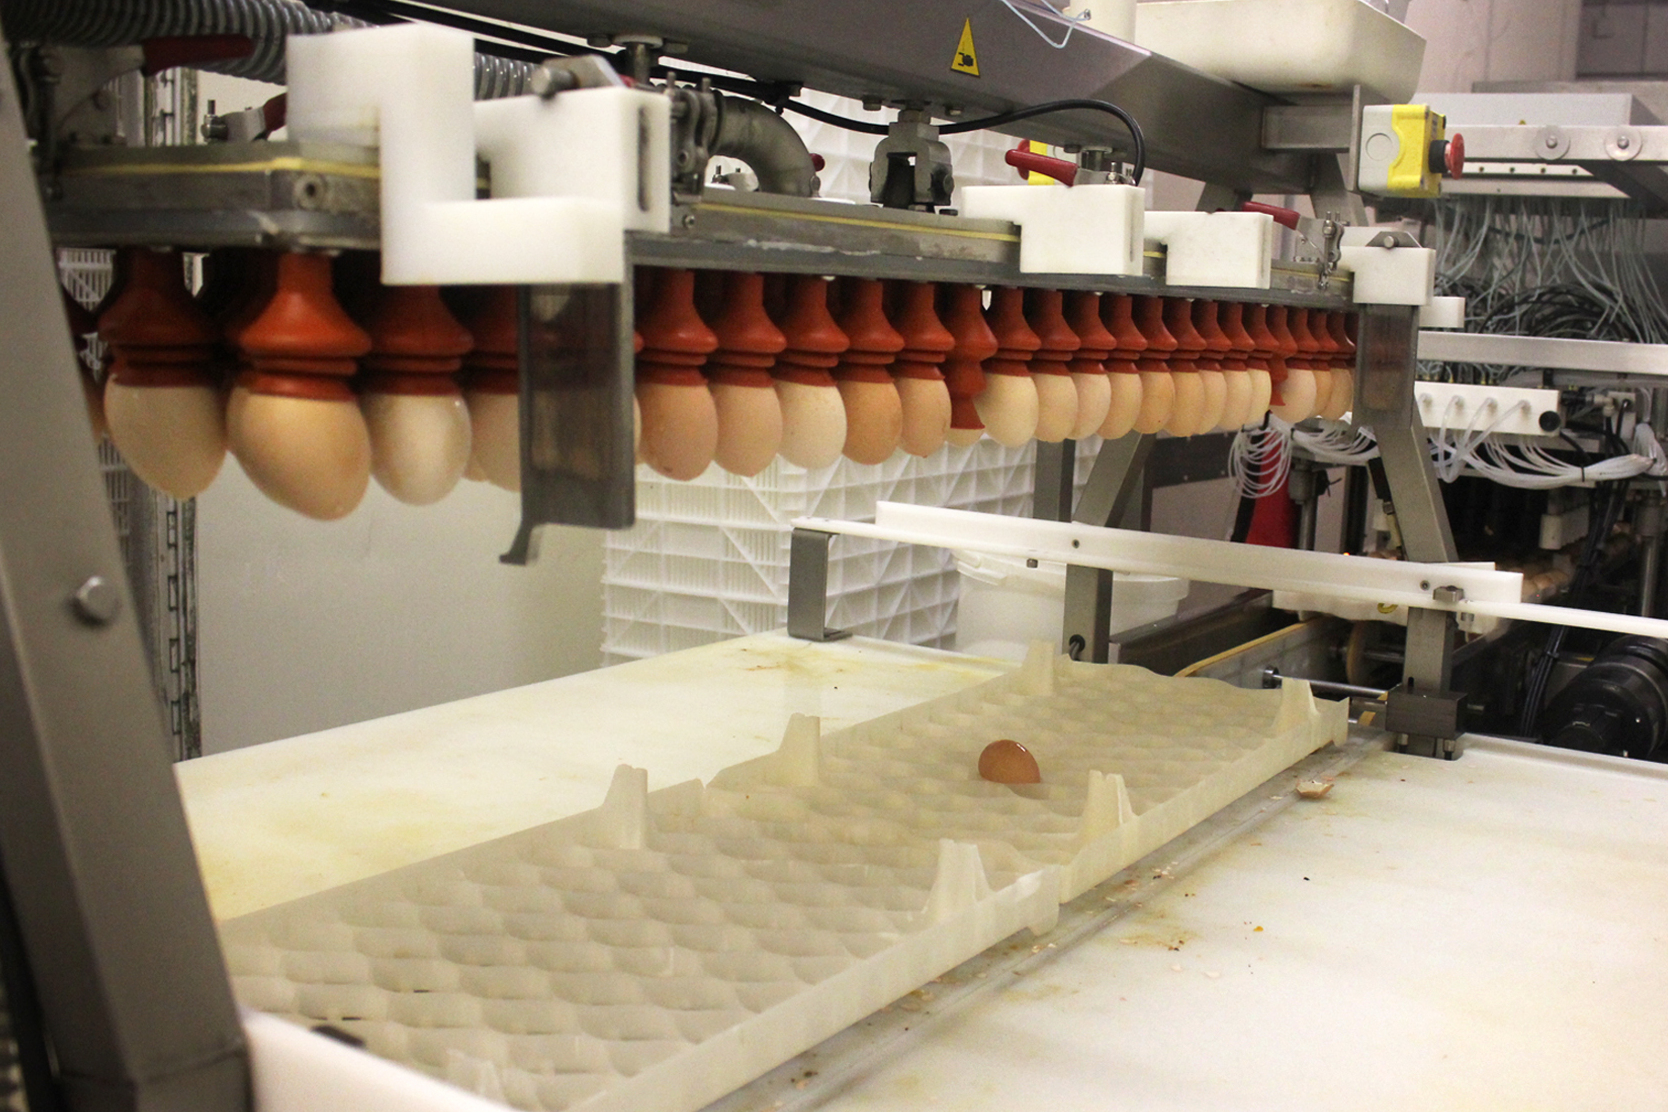 When the chicks are almost ready to hatch, they go through a vaccination robot. Photo: Dan Charles/NPR